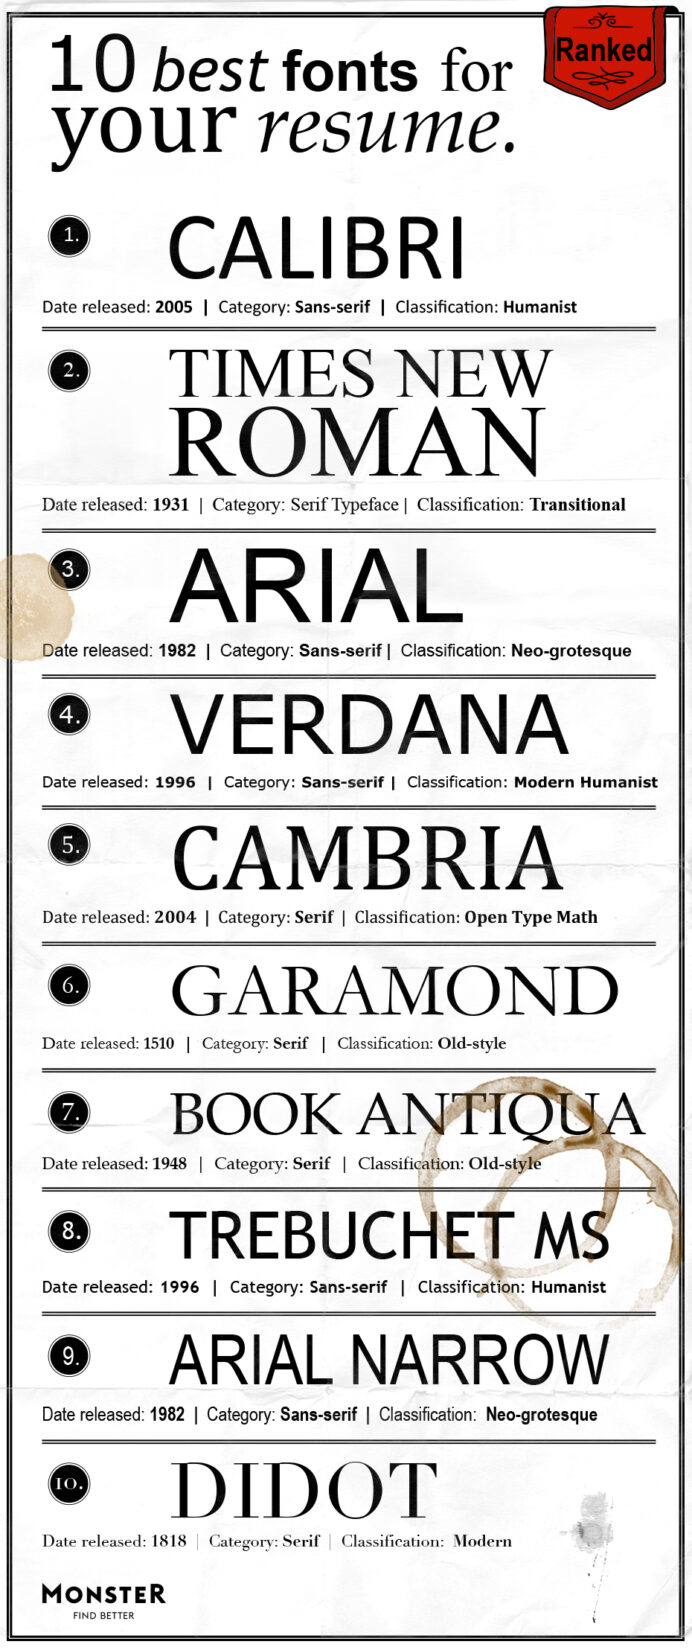 best font for resume monster most common fonts ranked adjectives and adverbs job sites Resume Most Common Resume Font